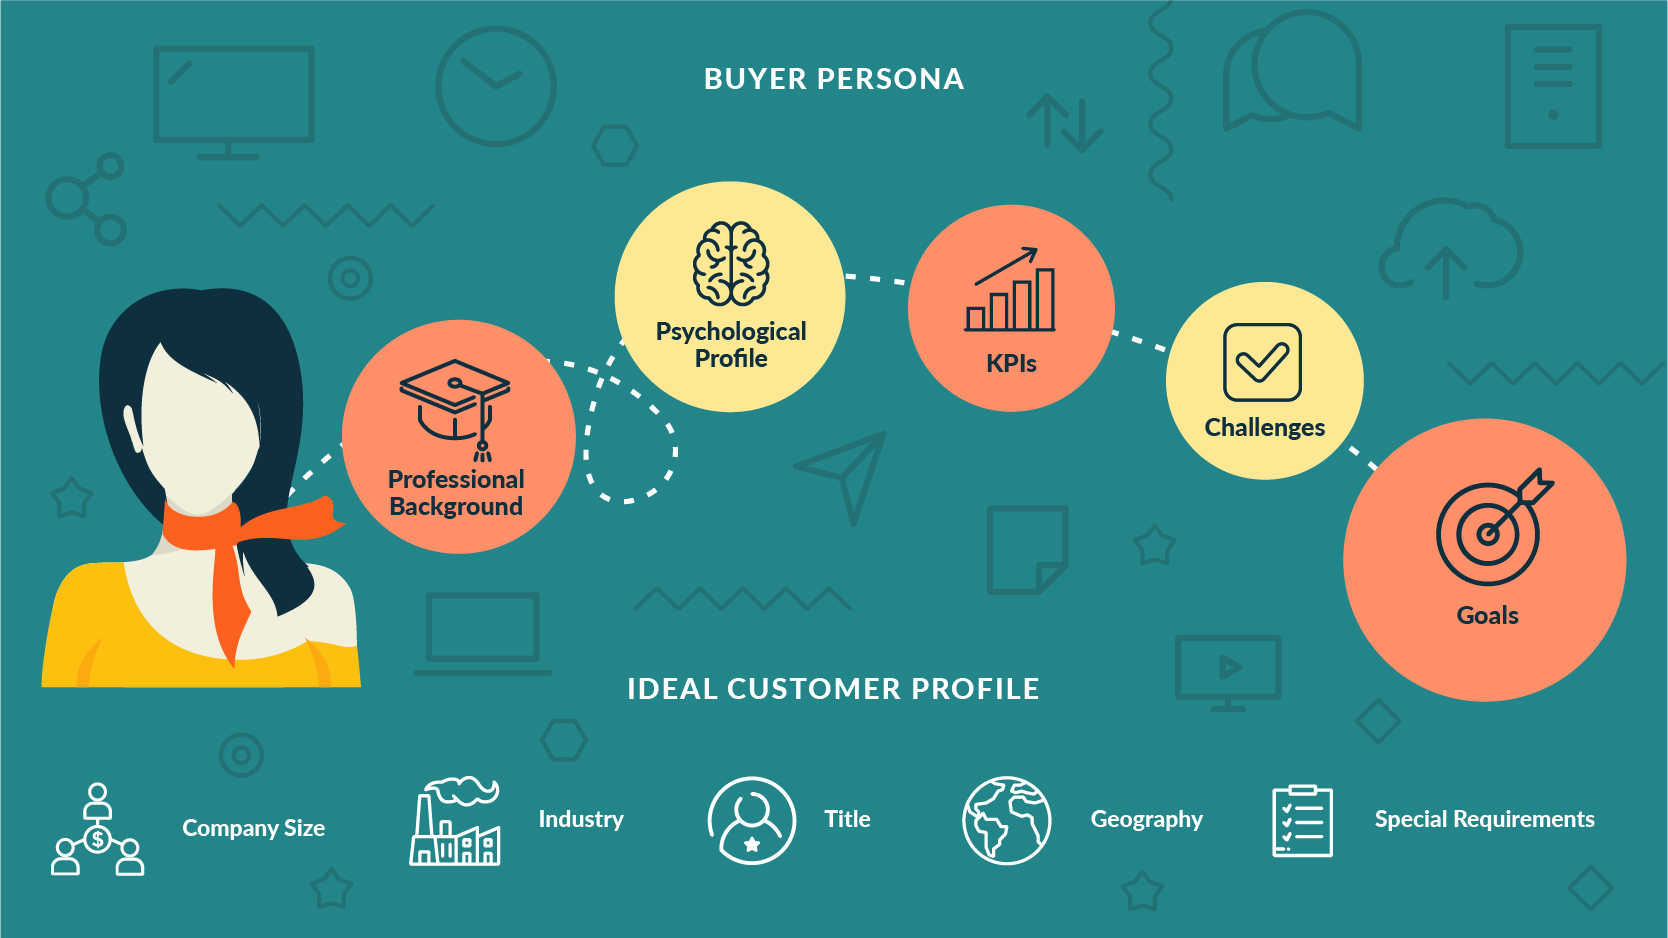 buyer persona and ideal customer profile